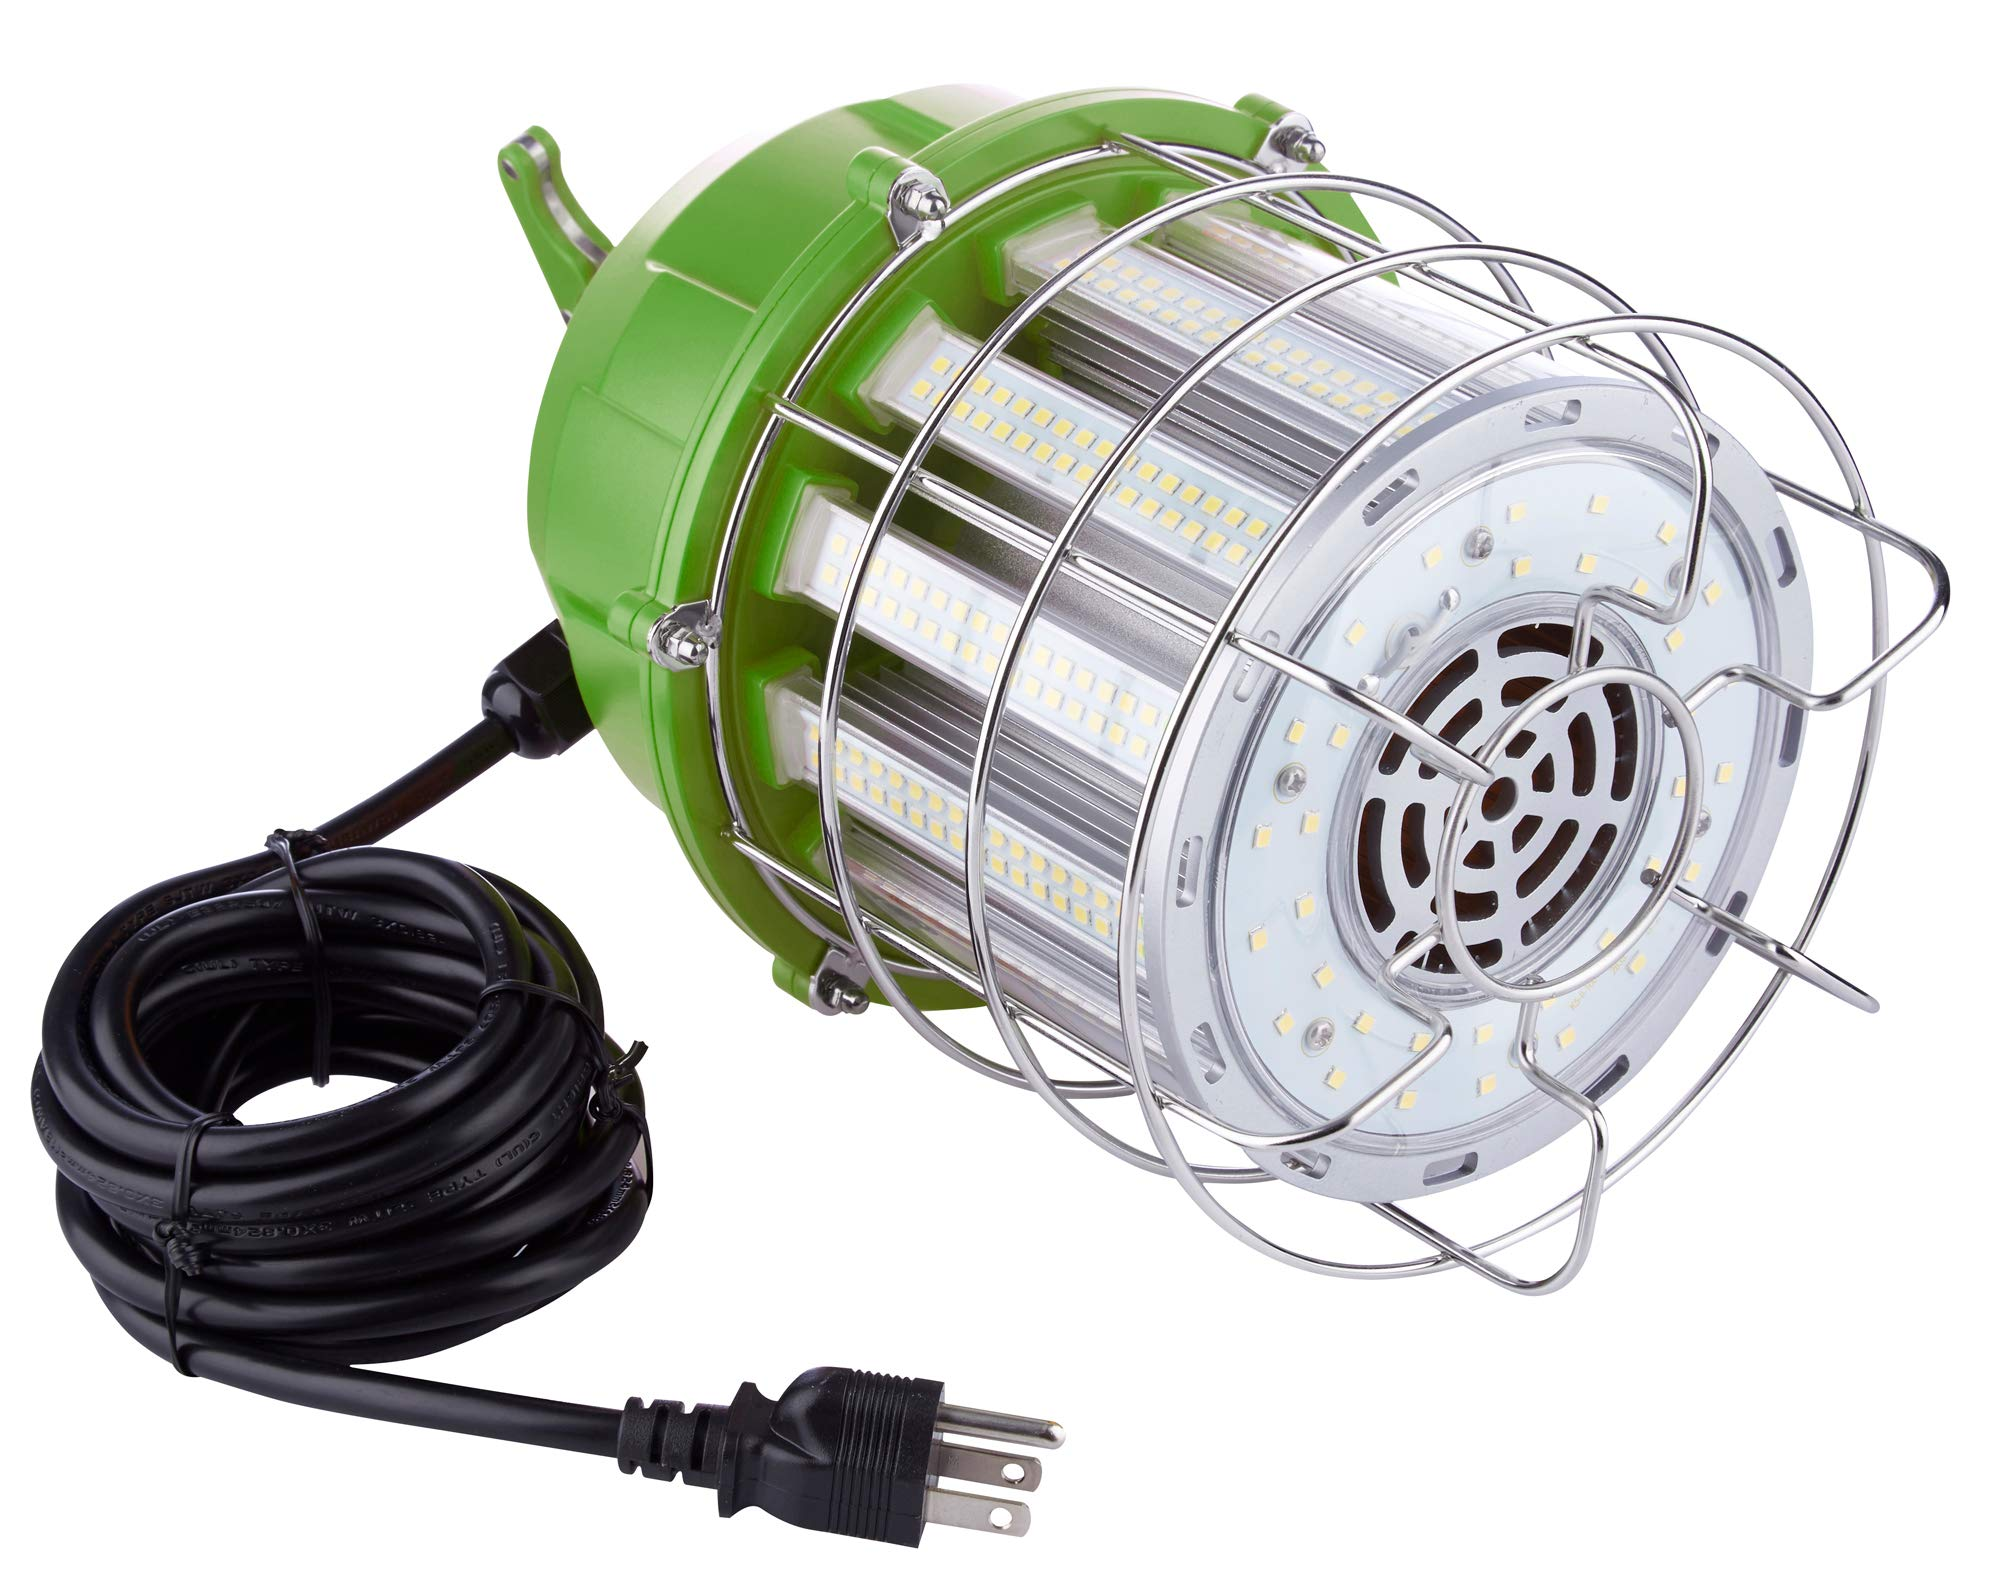 PowerSmith PTLK52-100 New 12,000 Lumen High Bay Temporary LED Daisy Chain Hanging Work Light with Metal Clasp and 10 ft Power Cord Medium Green by POWERSMITH (Image #3)